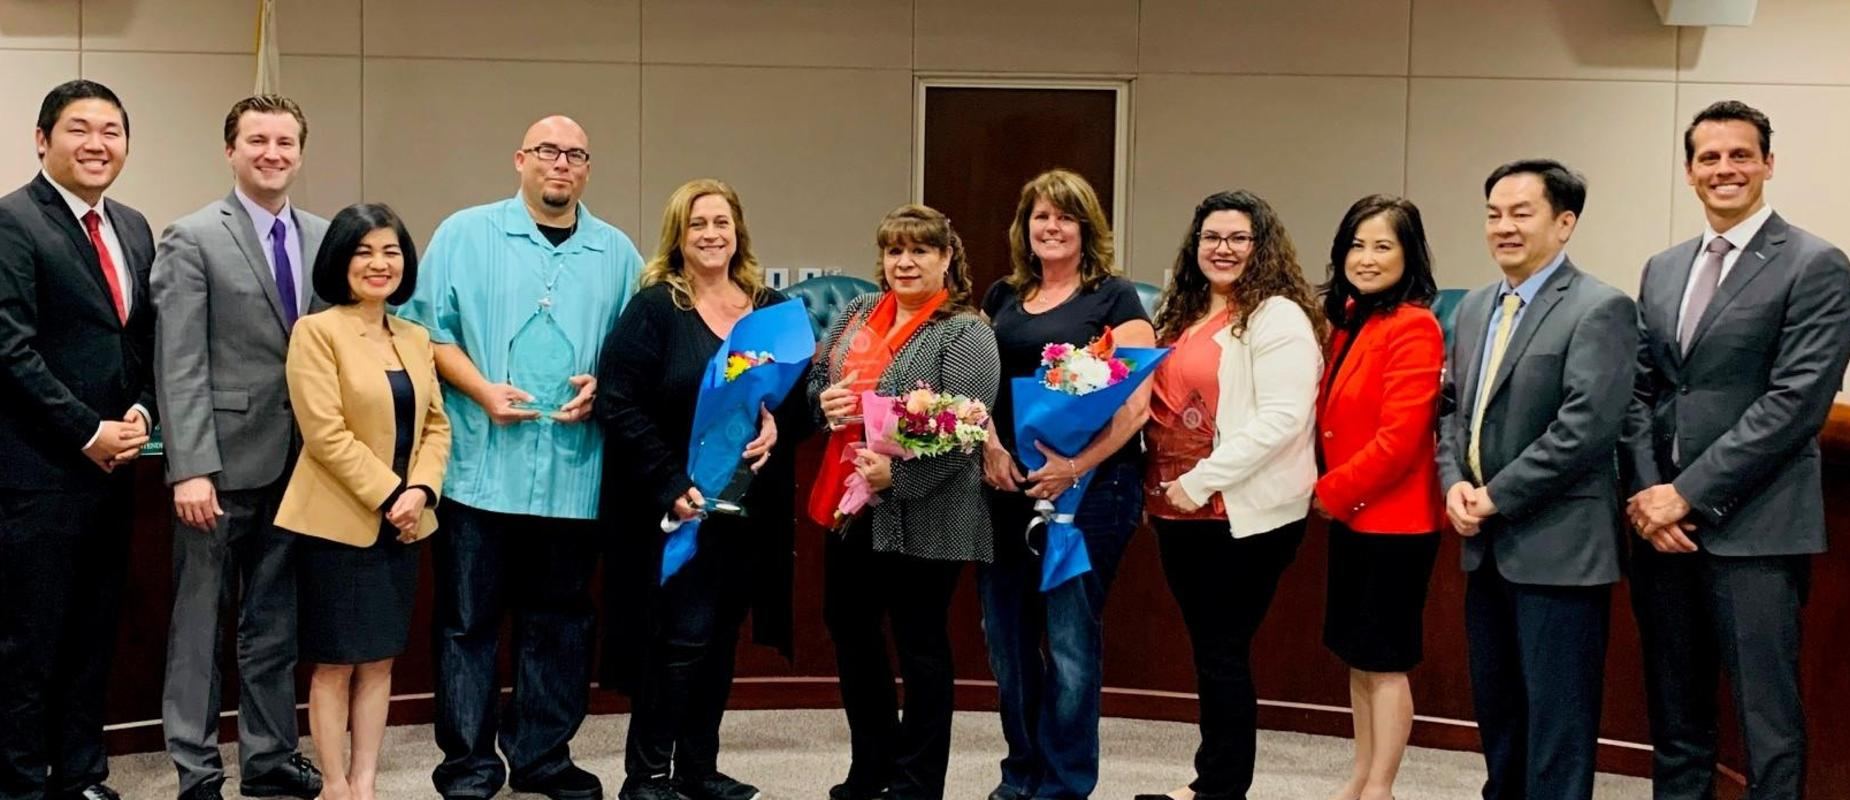 Congratulations to our Classified Employees of the Year!